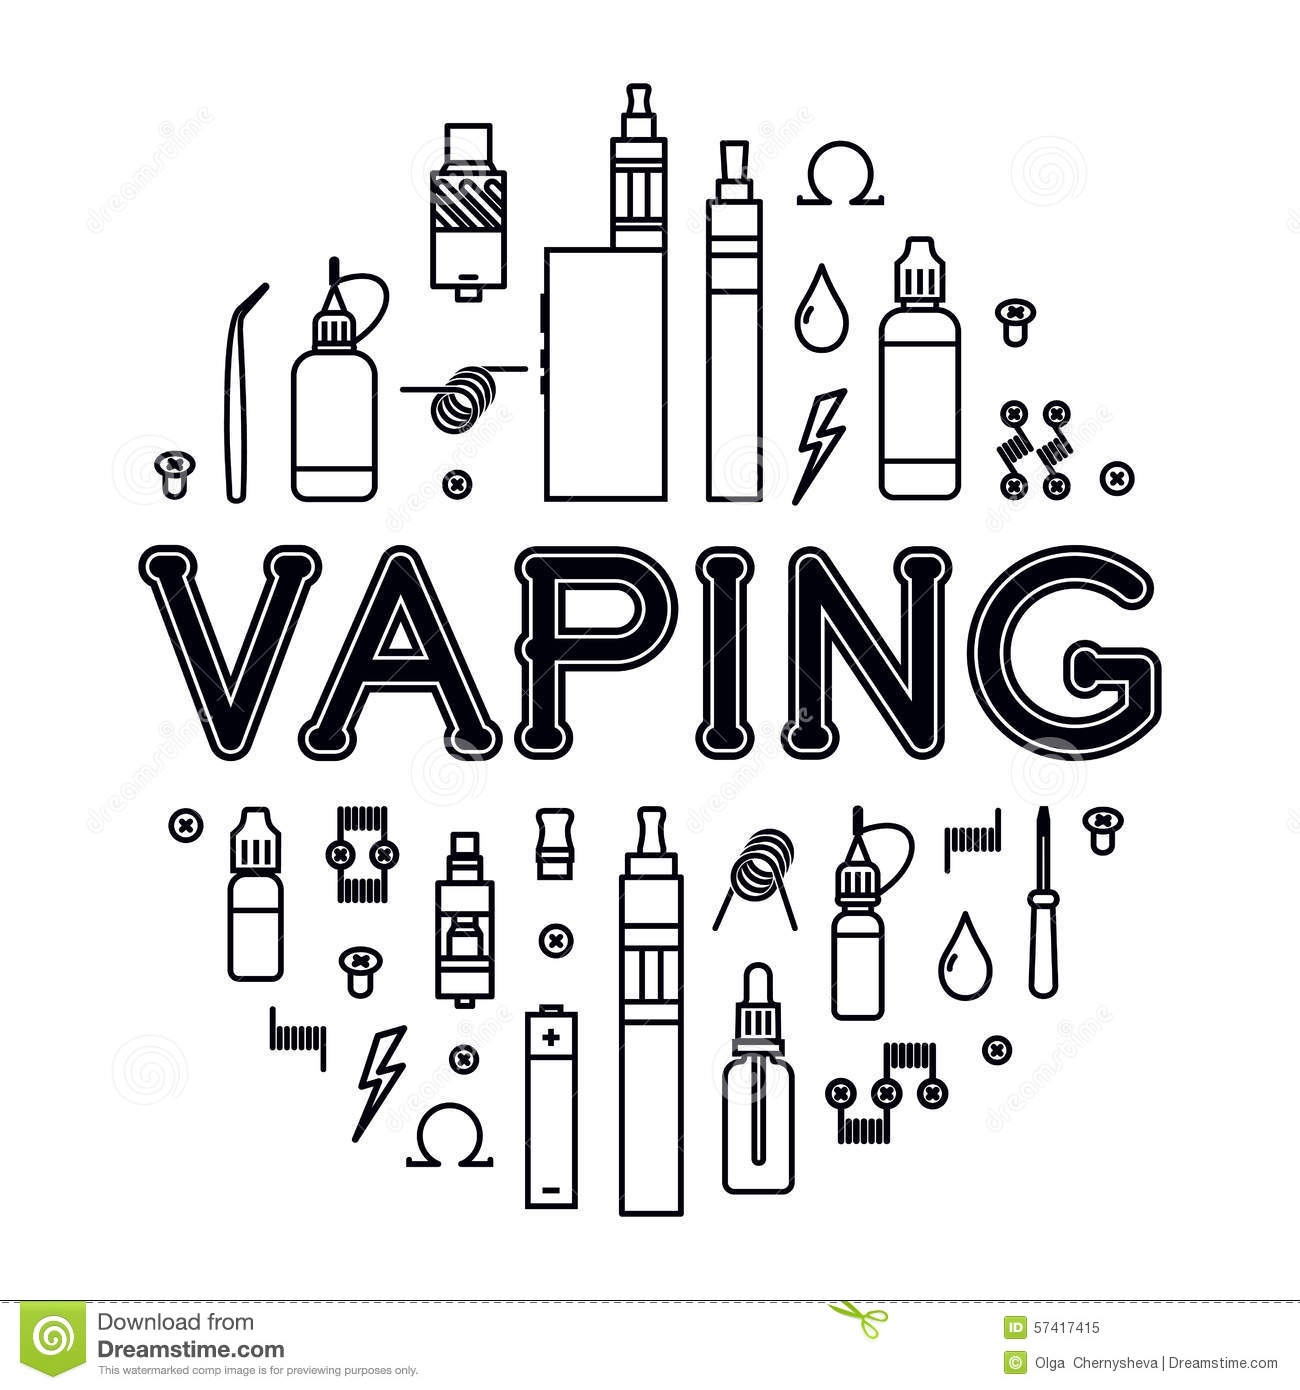 Stock Illustration Vaping Icons Set Vector Illustration Vaporizer Accessories Vape Isolated White Background Image57417415 additionally Electricity basics additionally 1738966 moreover Ui  iec grs 60417 5140 in addition Power Supply For A Fluorescent L  12v. on all electrical symbols